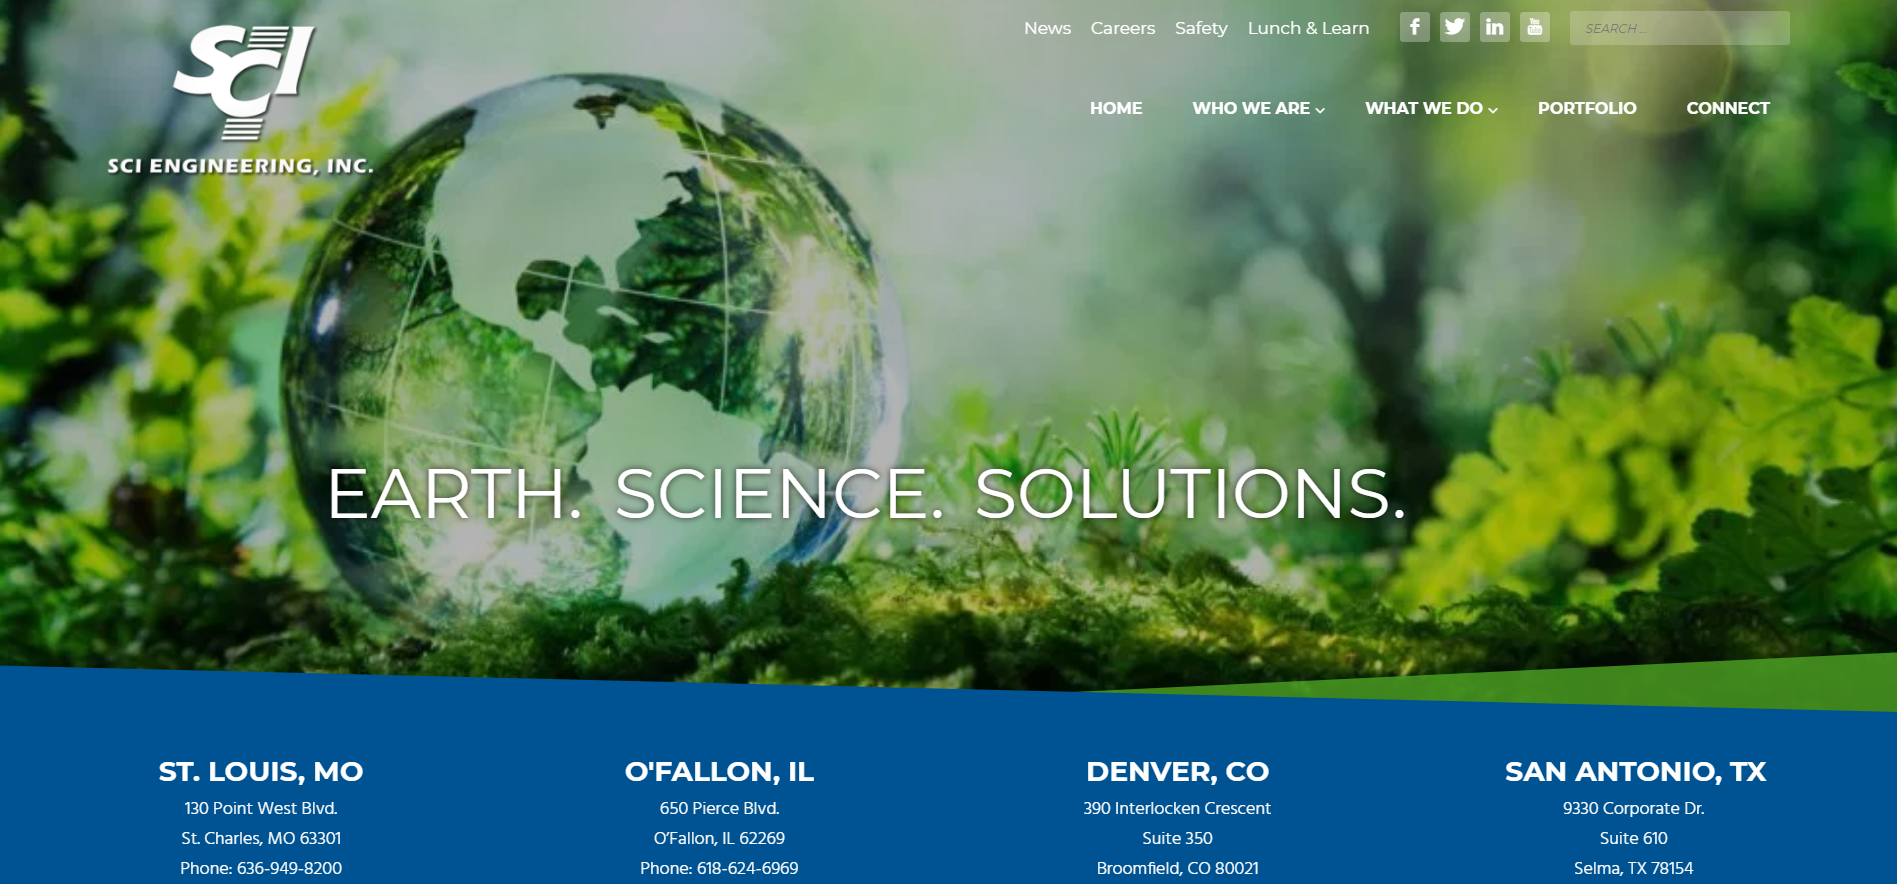 SCI Engineering, Inc. serves clients throughout the United States.